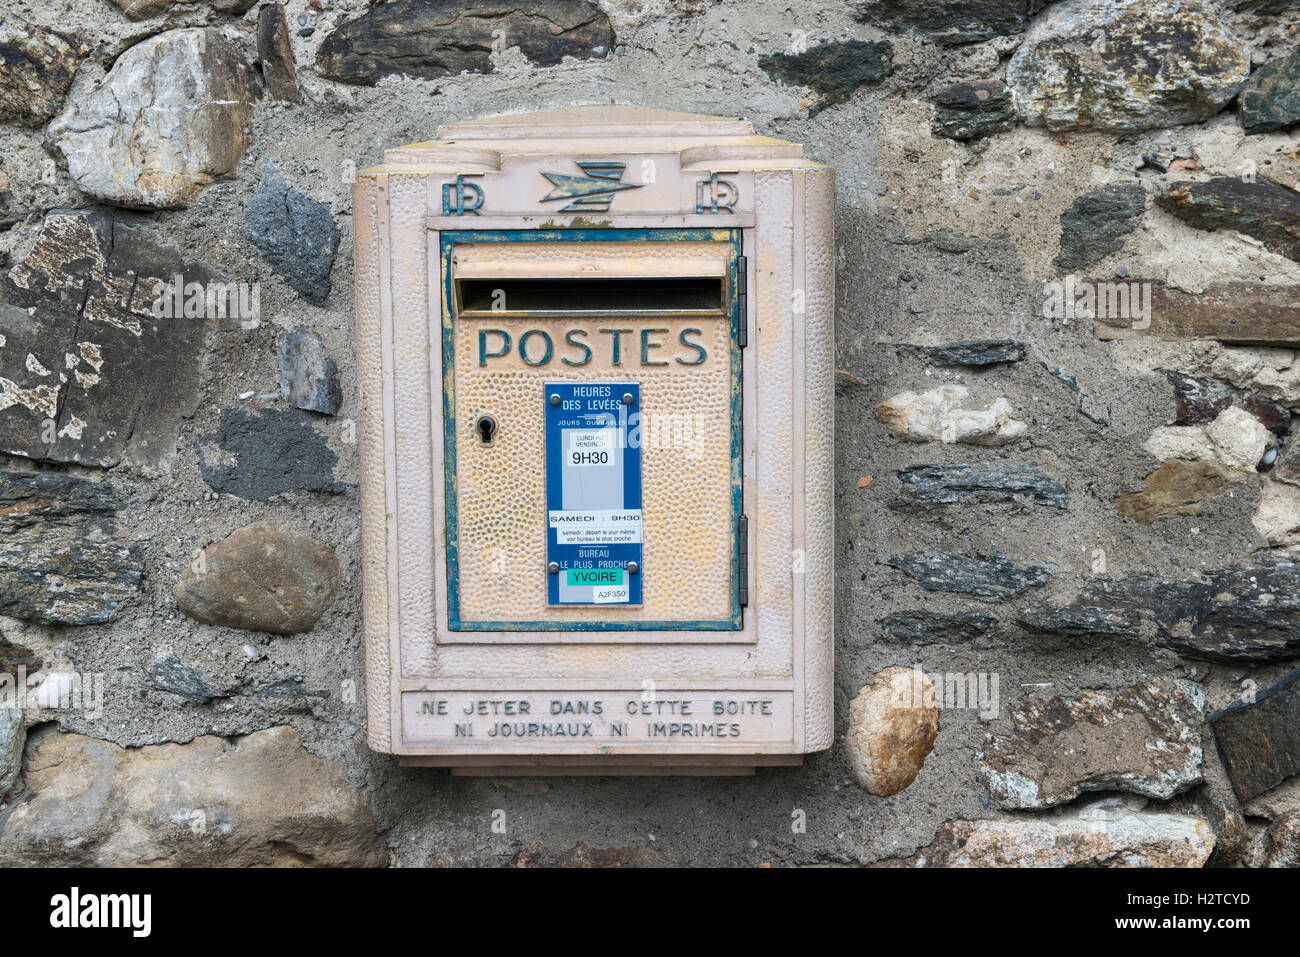 French letter box on a rock wall, medieval historic village of Yvoire, Haute-Savoie, France - Stock Image